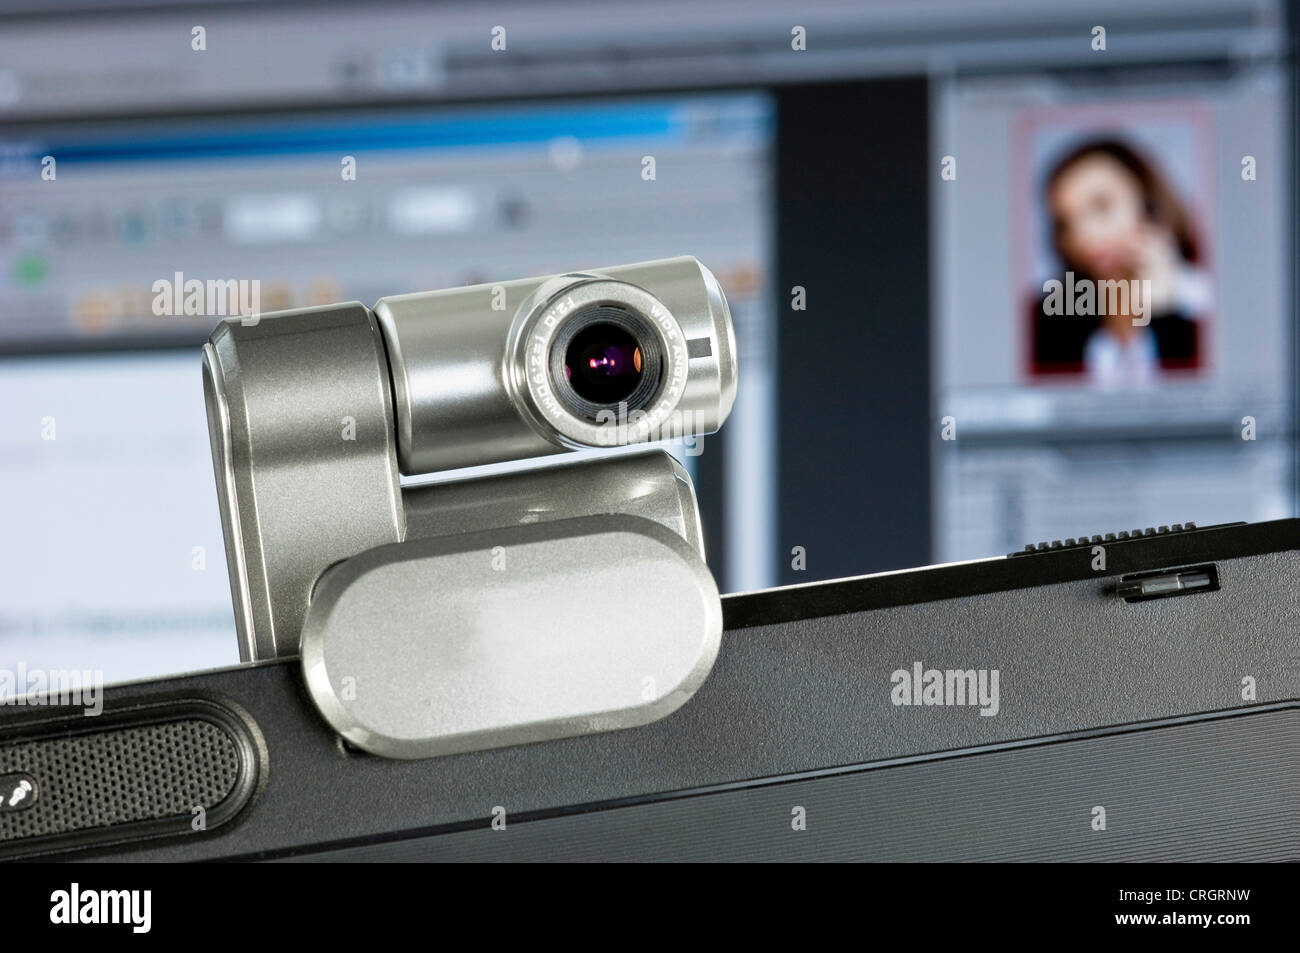 webcam installed on computer monitor, screenshot with portrait of a woman in the background - Stock Image